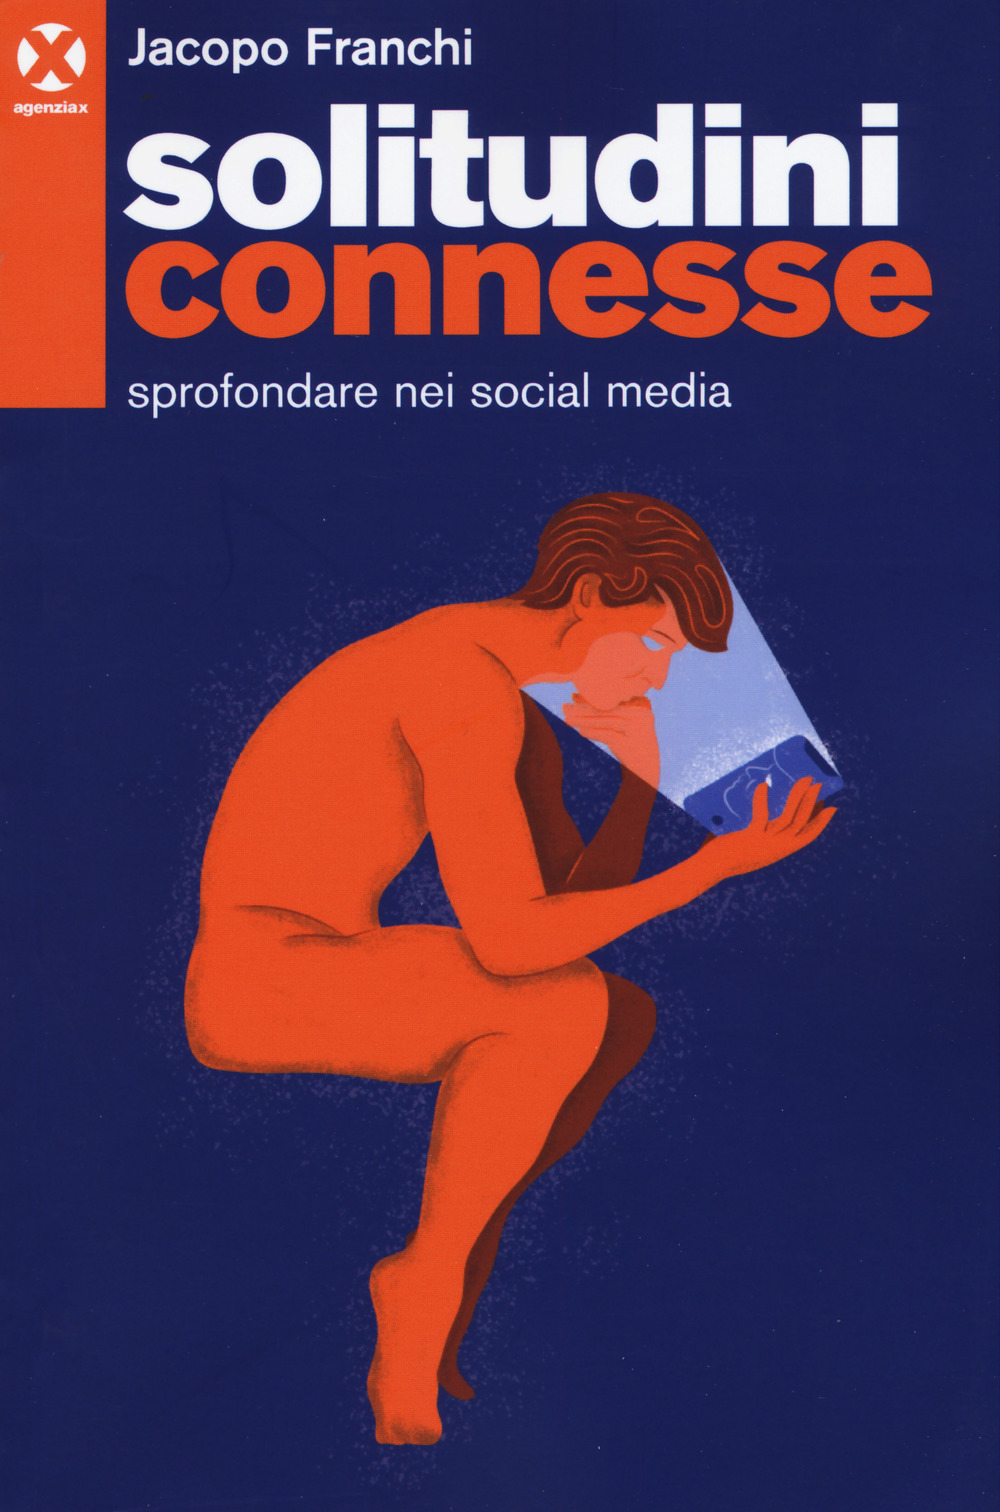 Solitudini connesse. Sprofondare nei social media